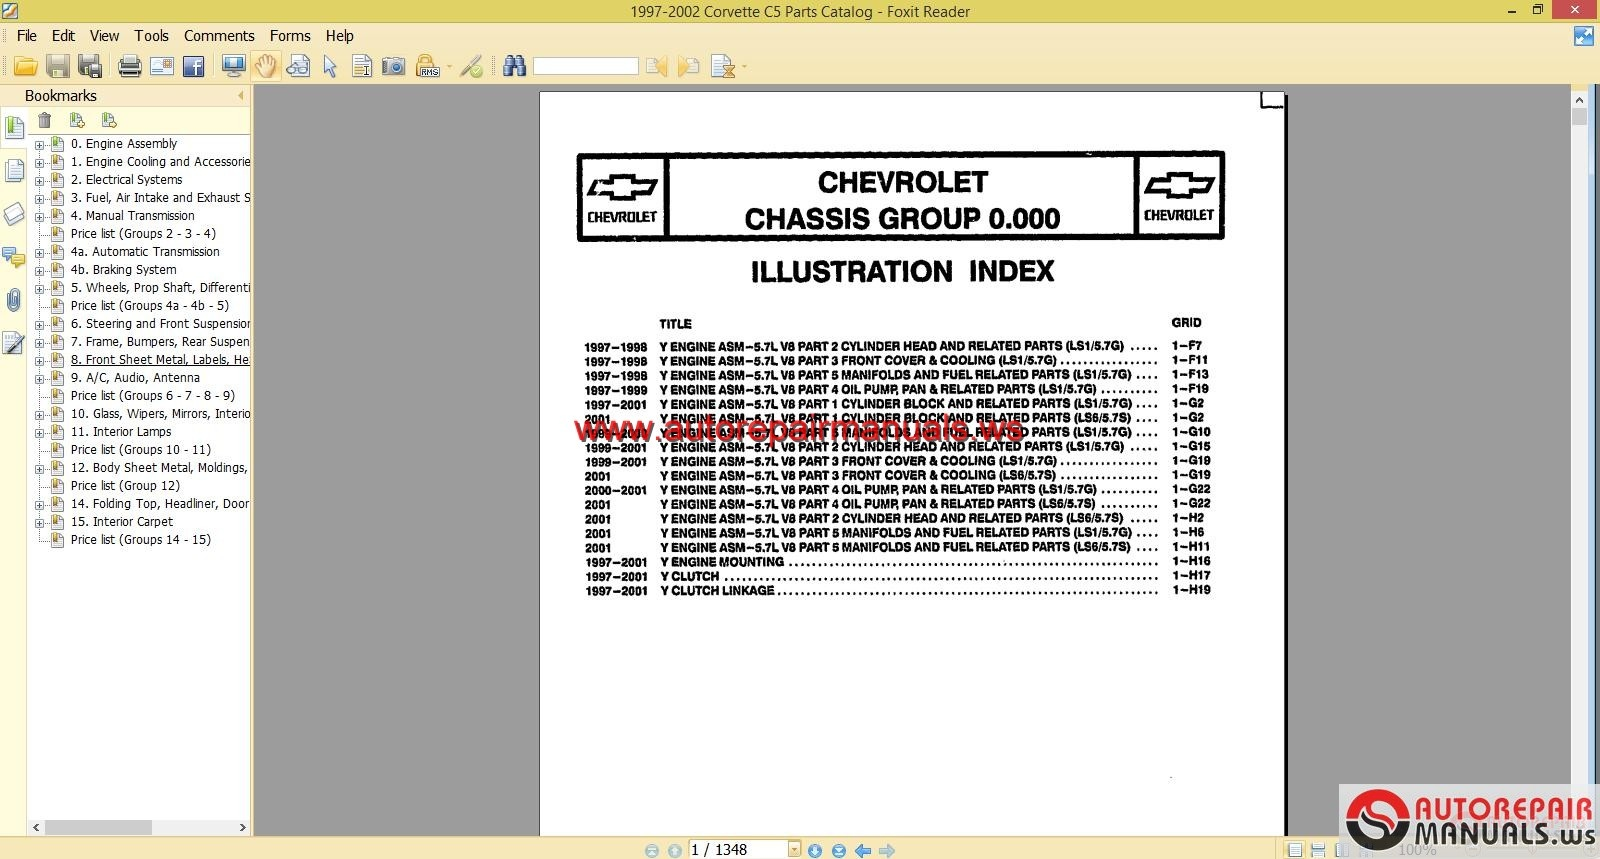 chevrolet corvette c5 5 7l 1997 2002 parts manual auto